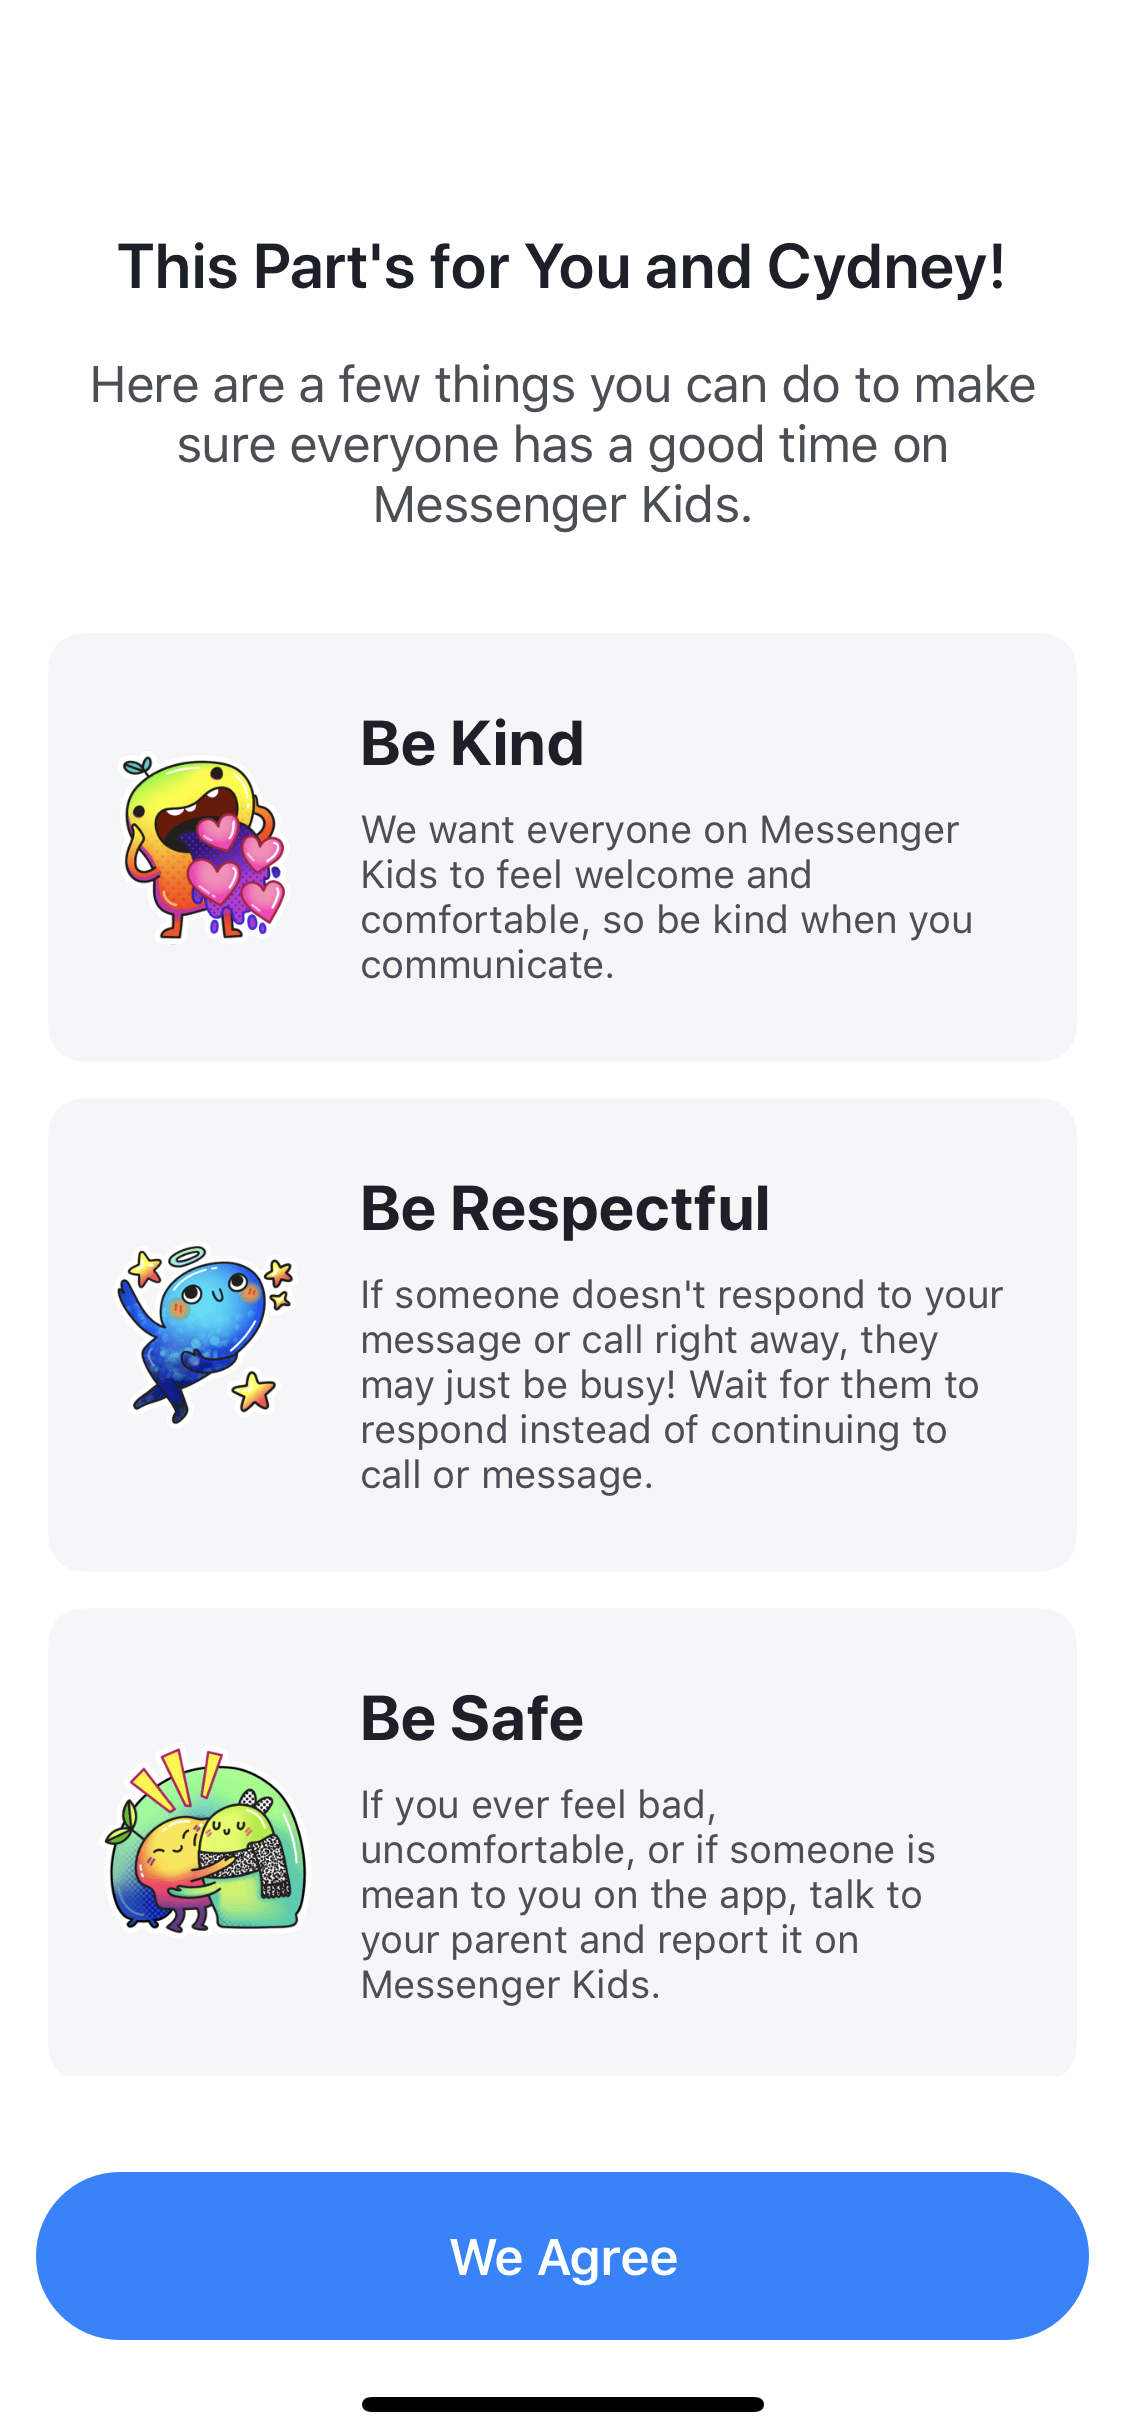 How to use messenger kids